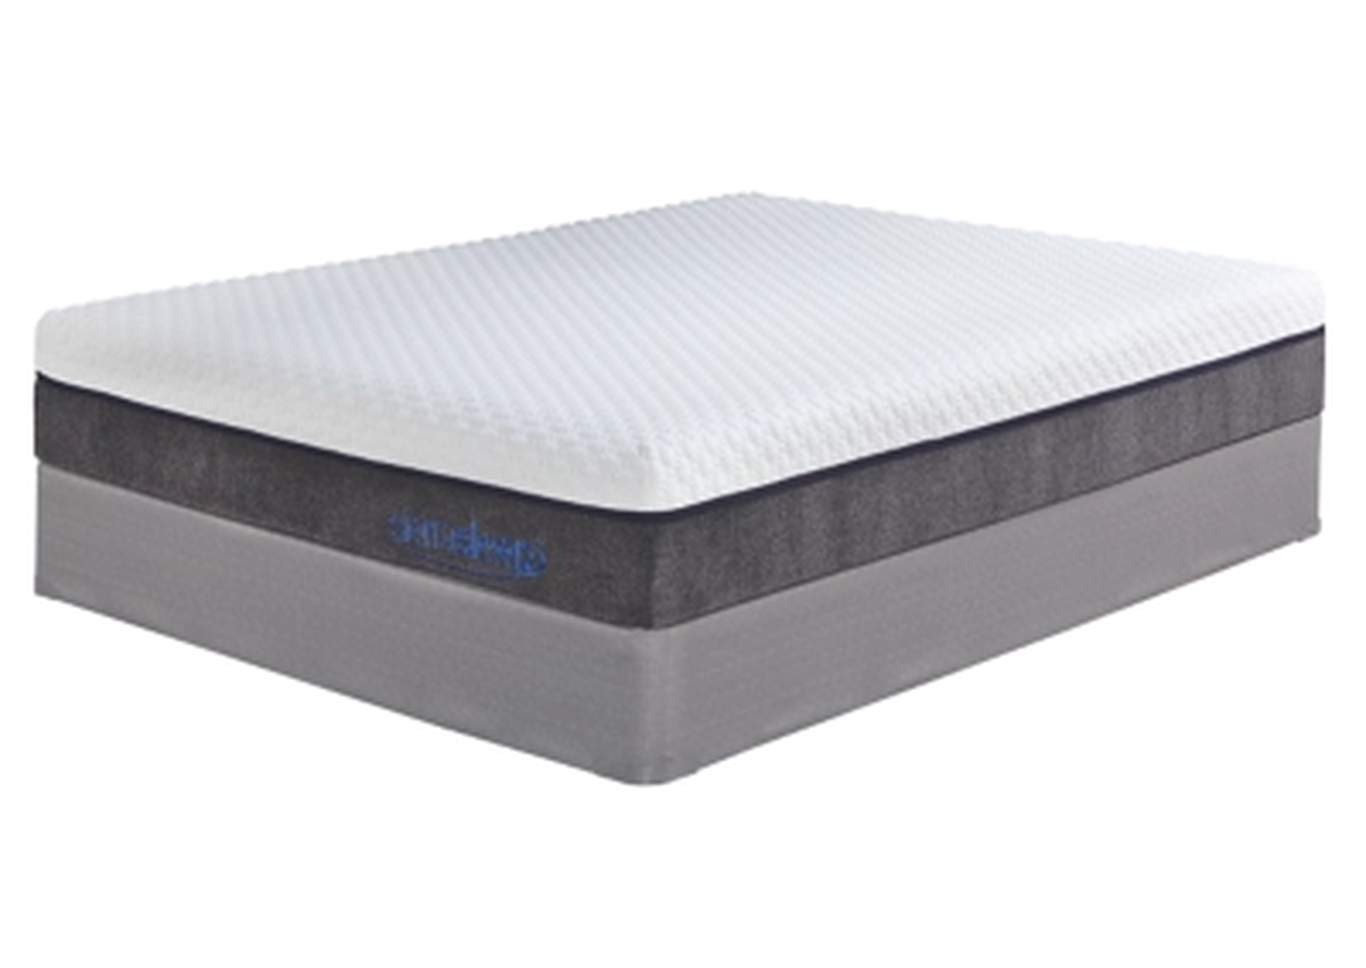 Mygel Hybrid 1100 King Mattress,Sierra Sleep